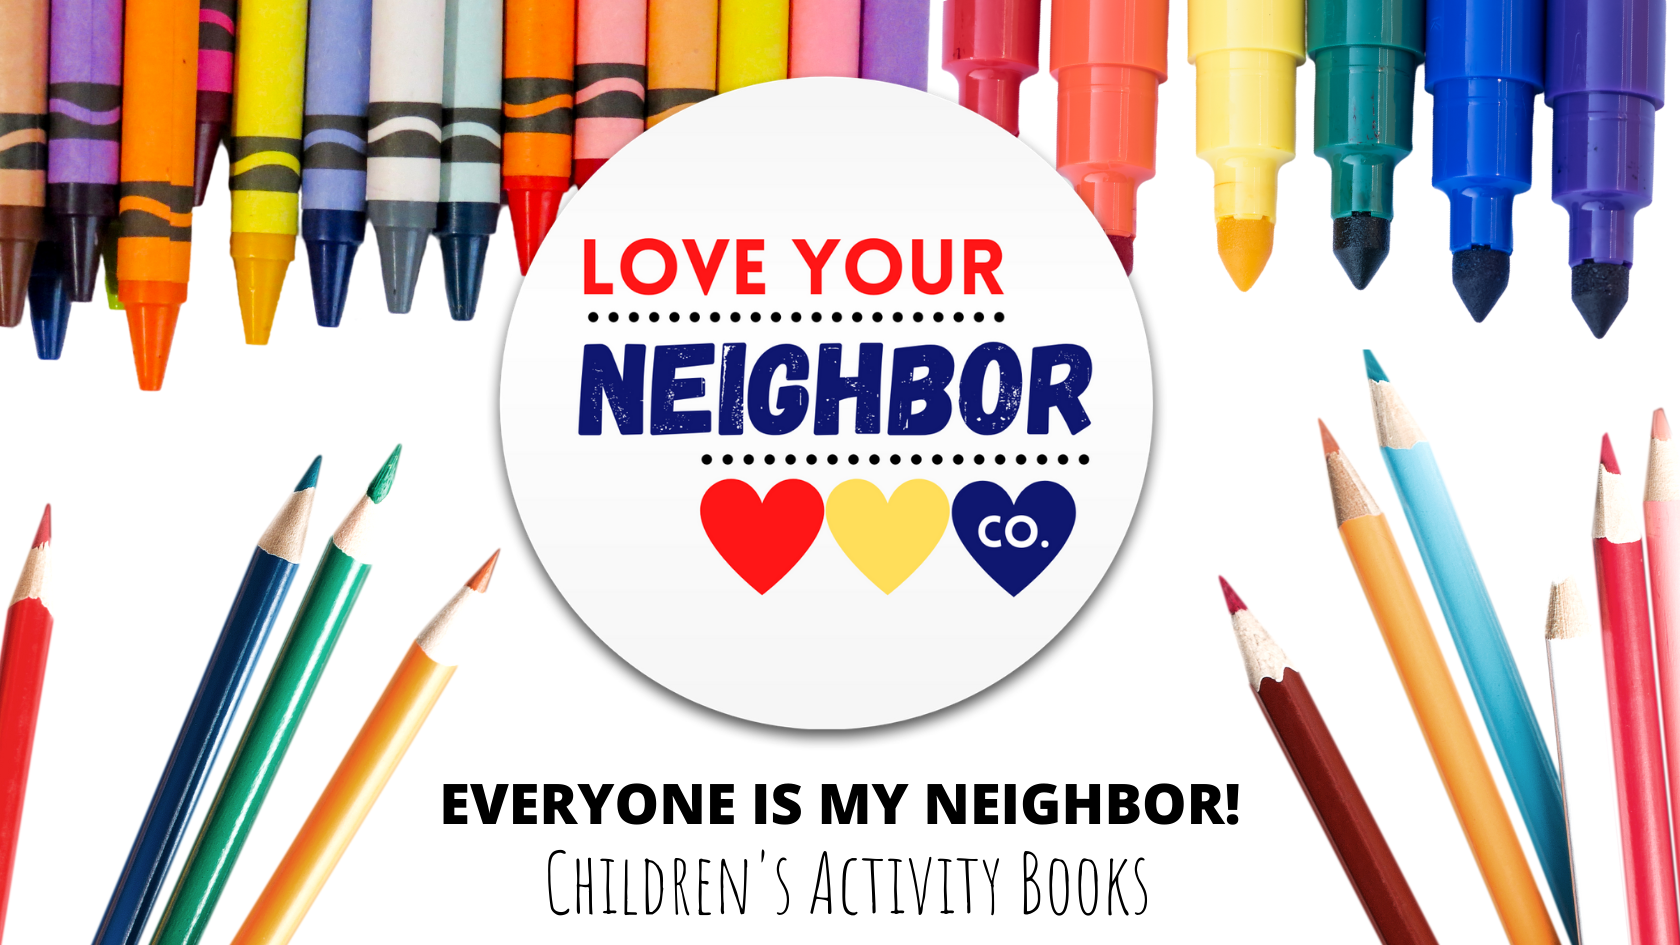 Love Your Neighbor Co.